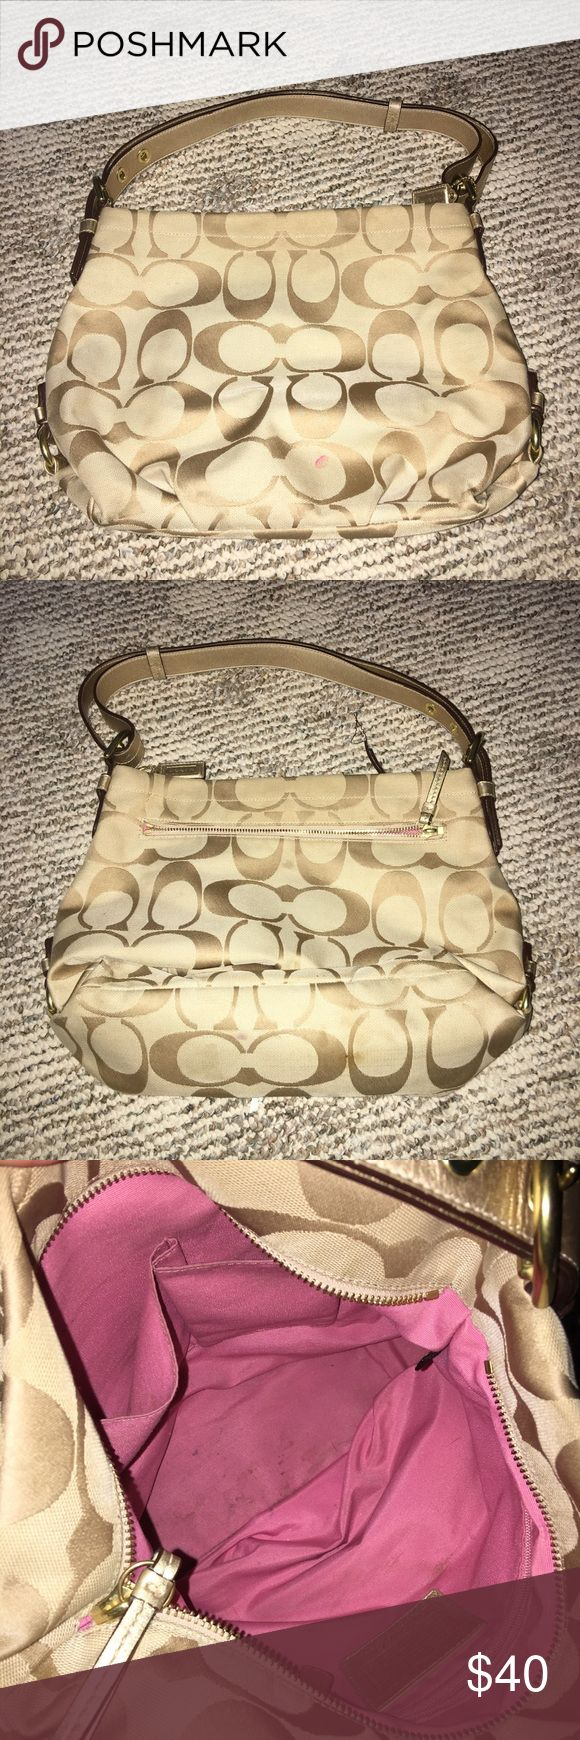 Authentic Coach beige shoulder bag! Comes from a smoke free home! Bag is in excellent condition! Still has a whole lot of life in it!! You can loosen or tighten the strap as needed! Coach Bags Shoulder Bags